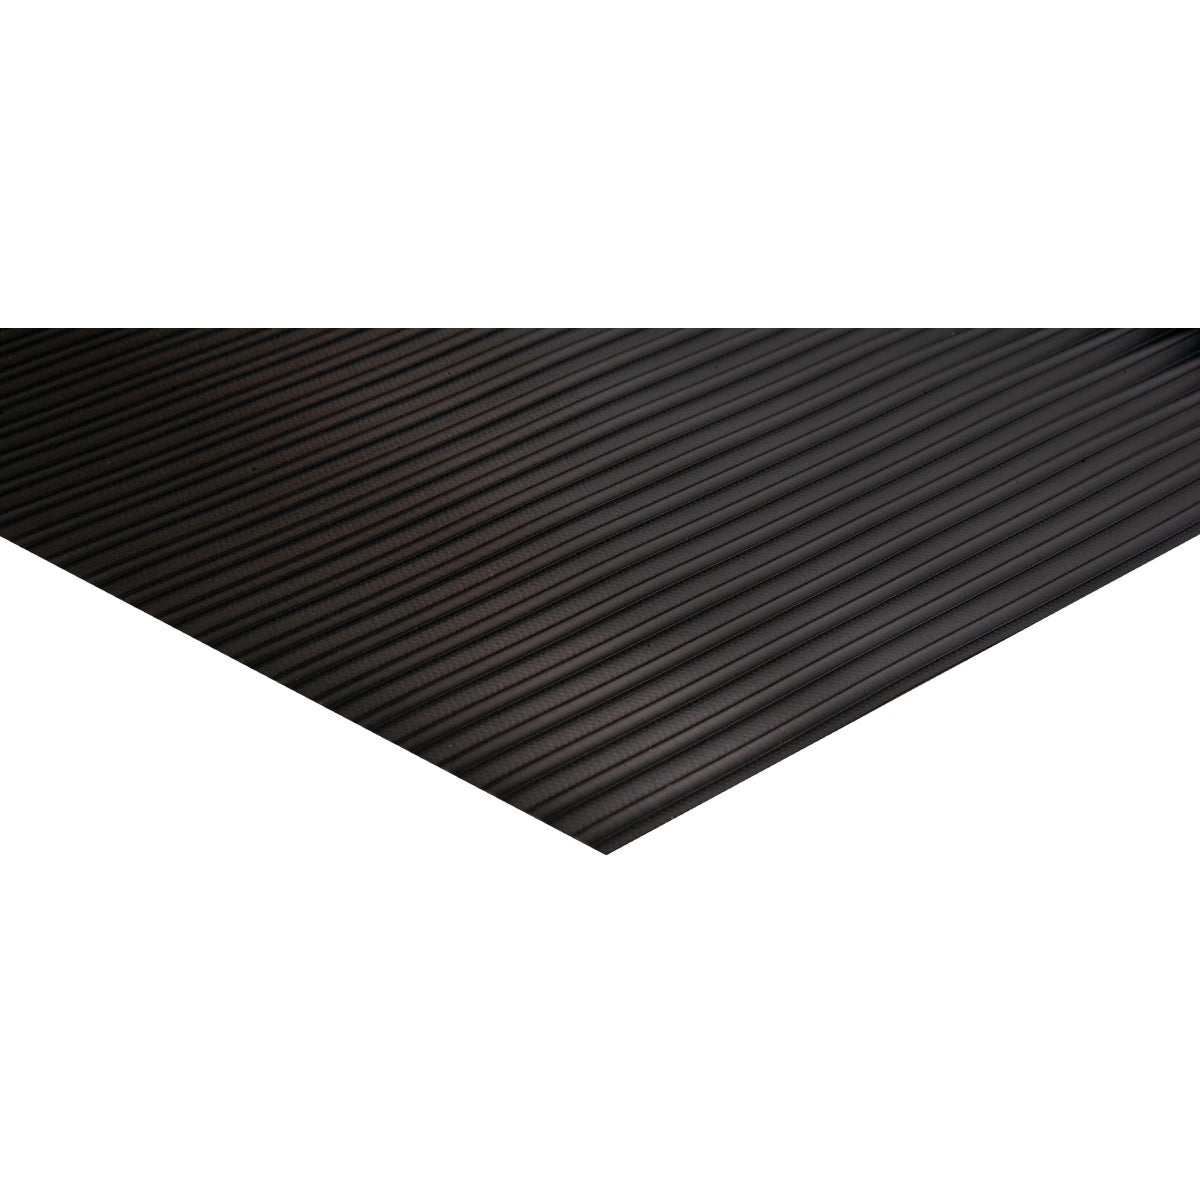 "27""X75' VINYL FLOOR MAT - VRI2705T by Dennis W J & Co"